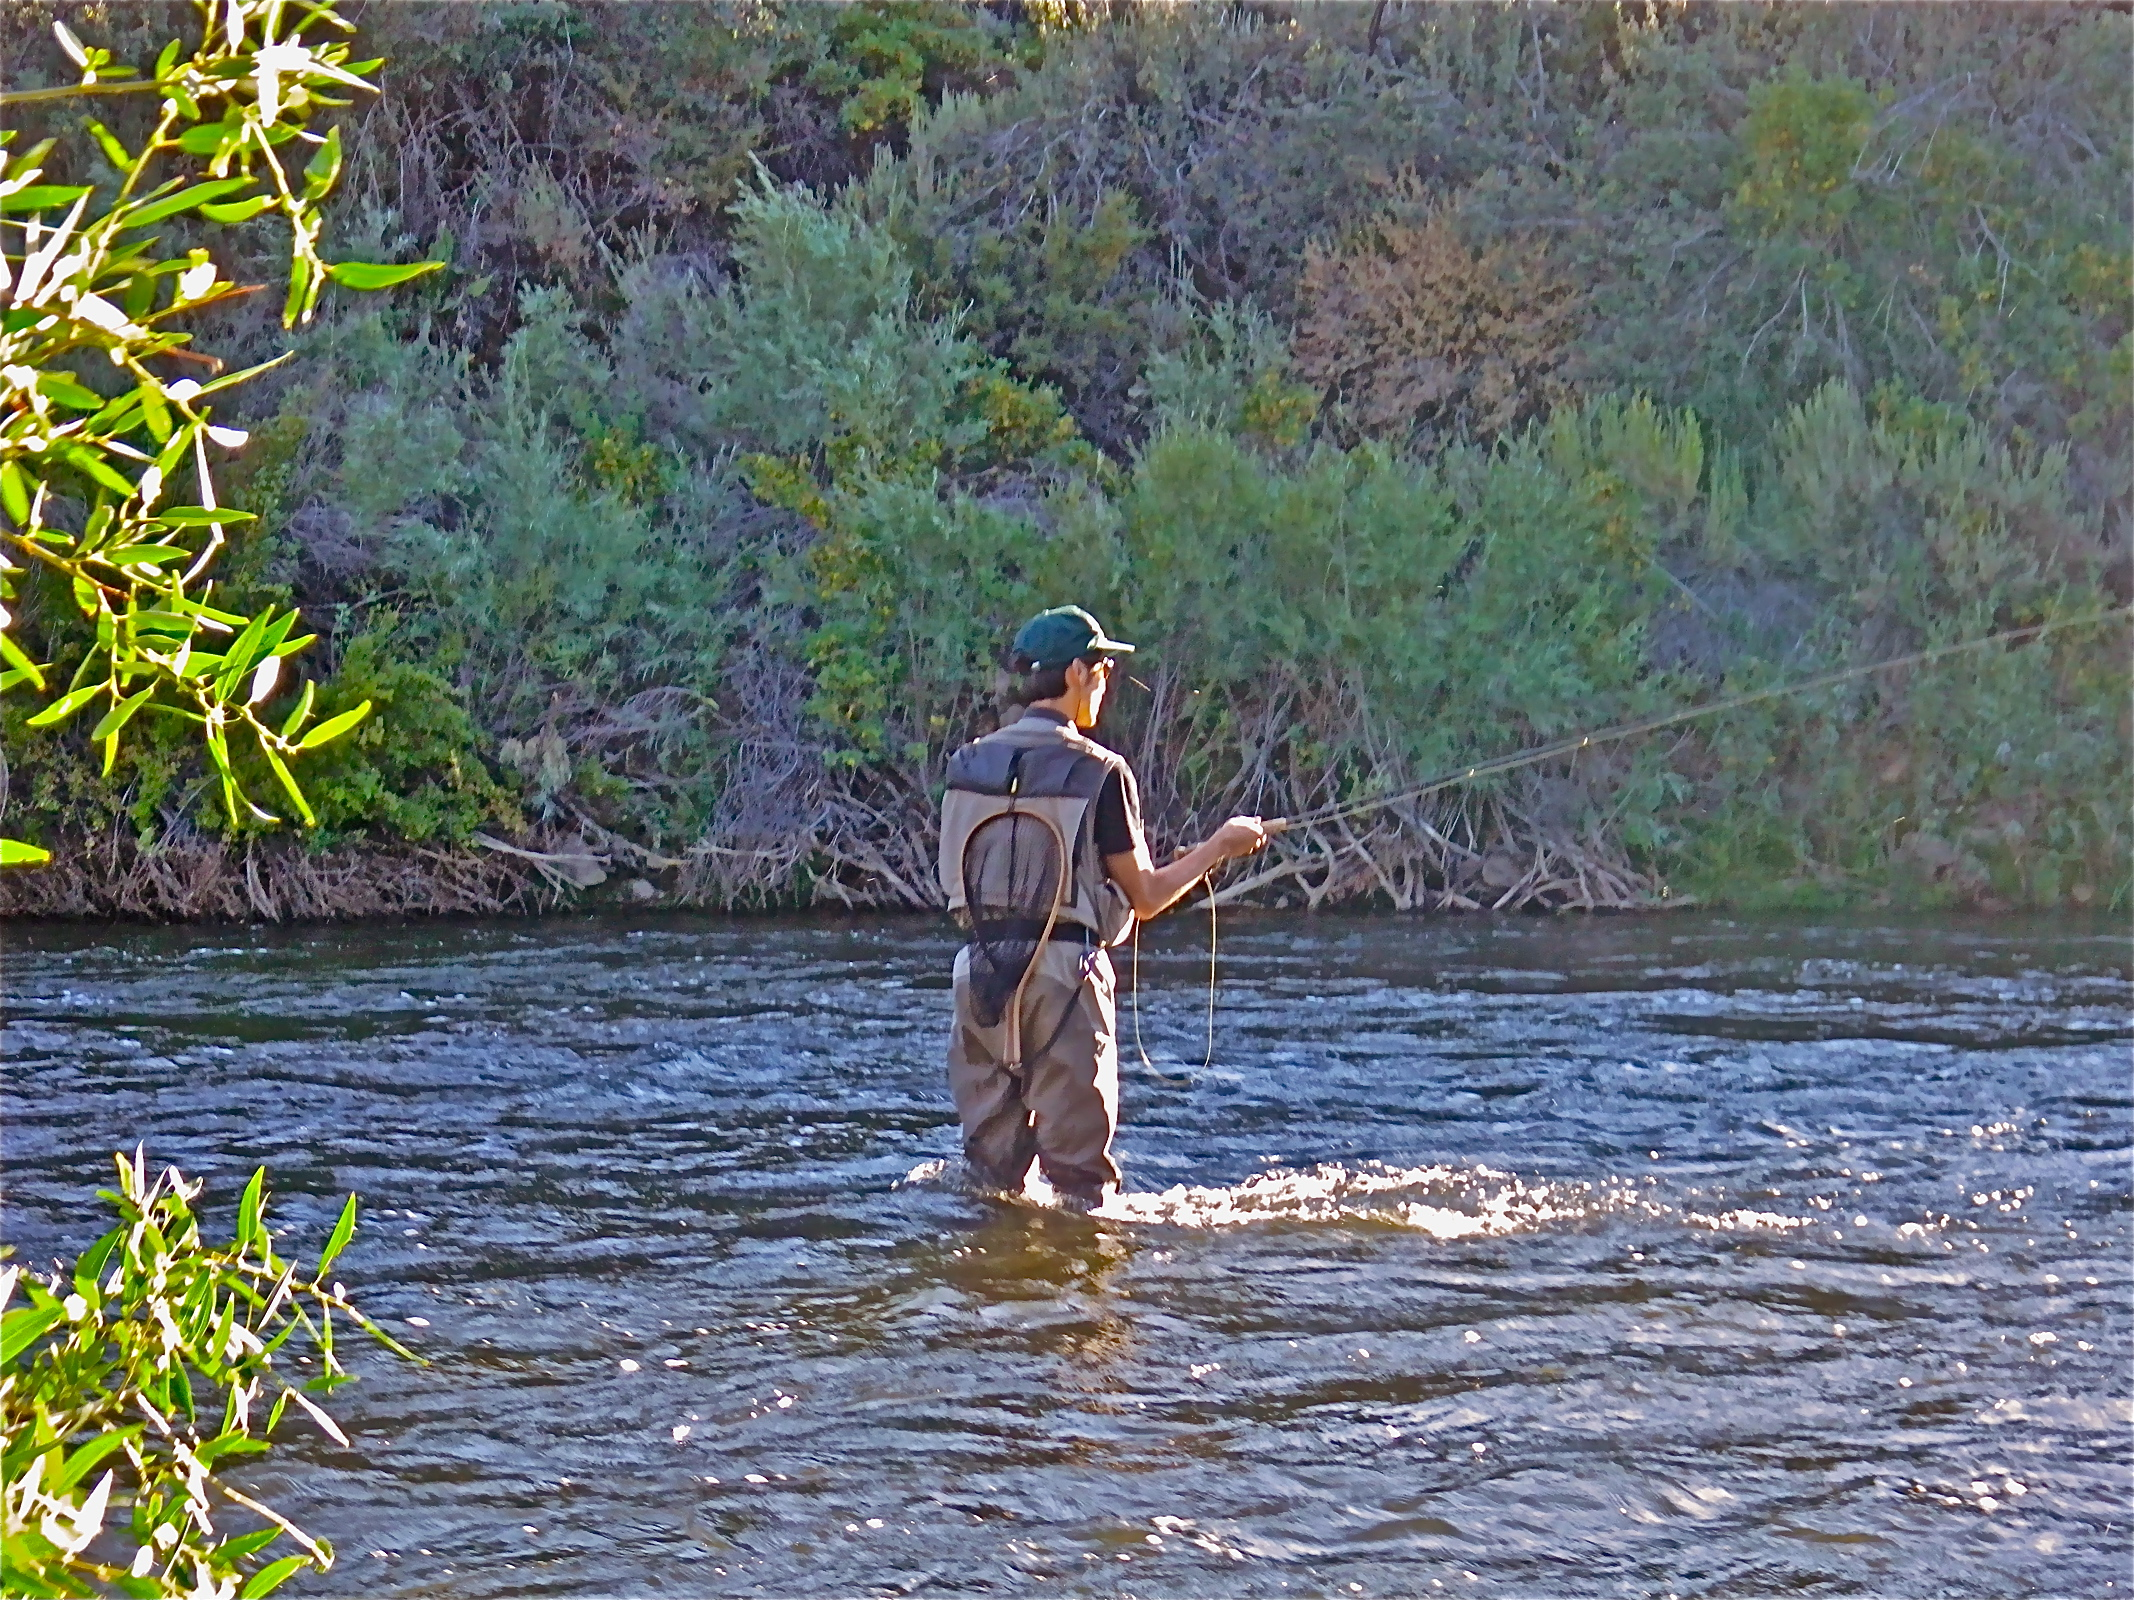 East walker river fly fishing planettrout for Walker river fishing